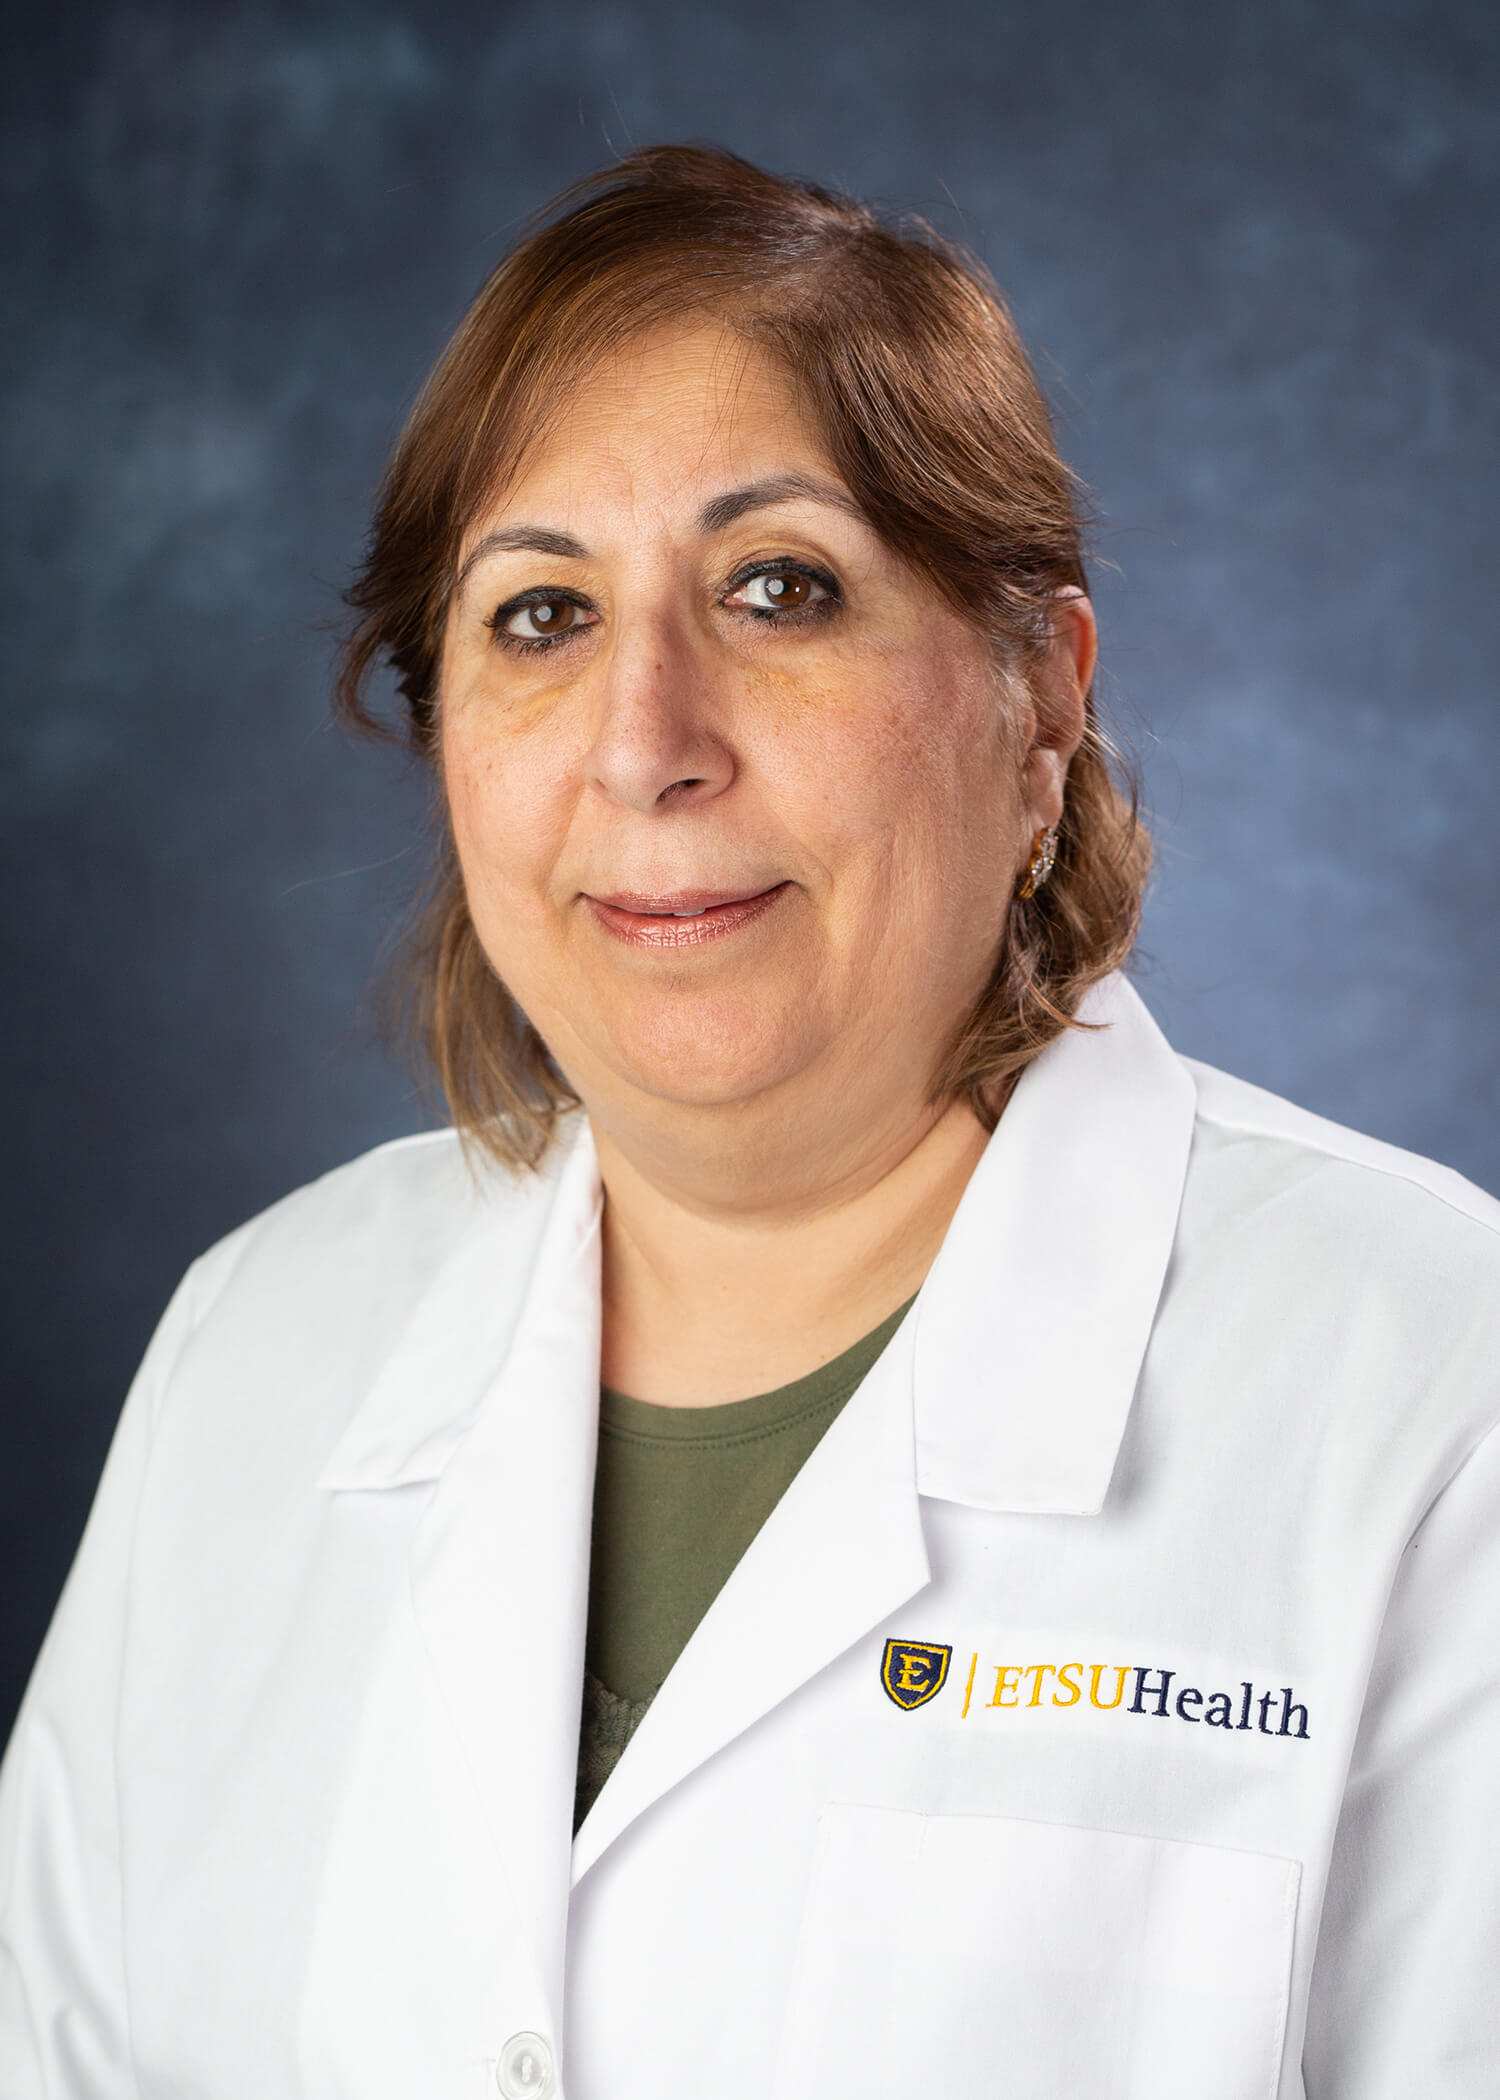 Photo of Anjali Malkani, M.D.